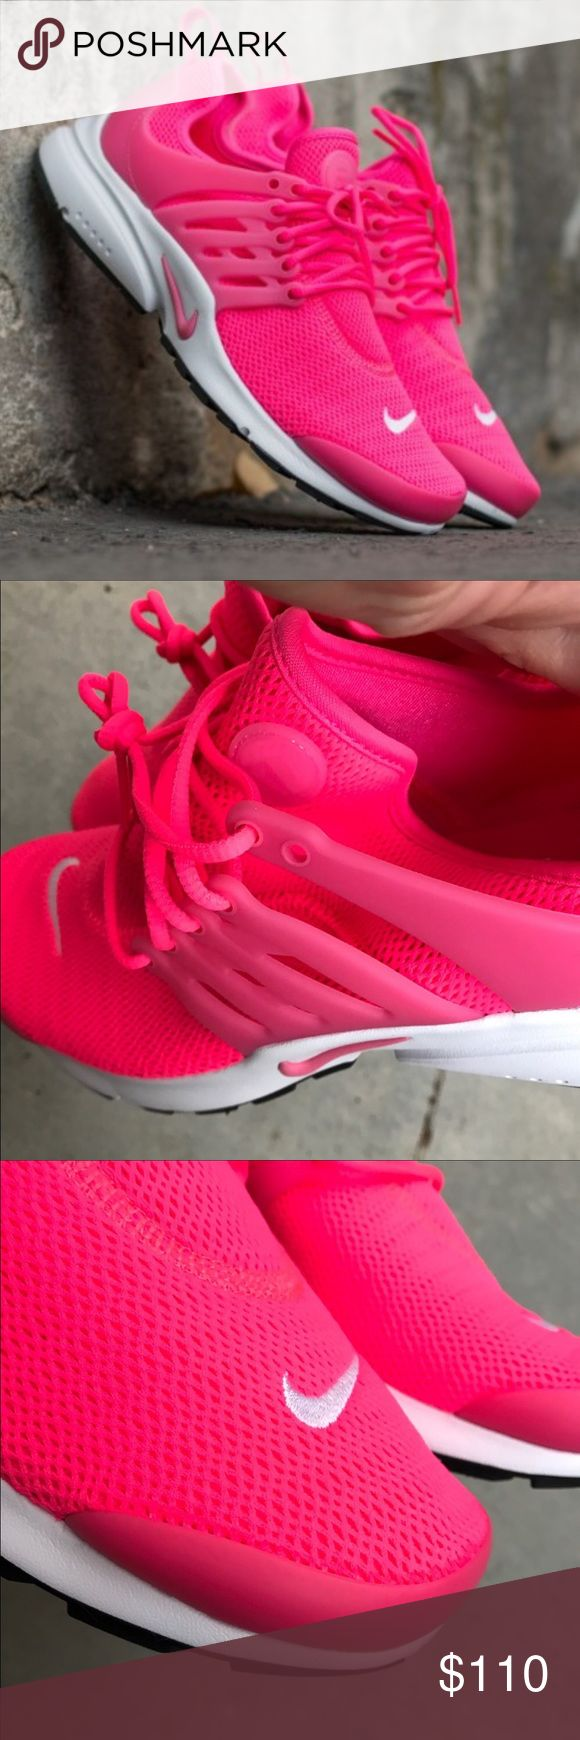 NWB 💕 NIKE AIR PRESTO WOMENS SIZES New, never worn Nike AIR PRESTO WOMENS SIZES 😍 HYPER PINK MESH! THIS SHOE IS 'IT' FOR FASHION, FUNCTION & most importantly COMFORT! 🎁 this item ships in original NIKE BOX. (I also have a size 10 listed without box at a discount)  NO OFFERS. THESE ARE FULL RETAIL AT ALL STORES INCLUDING NIKE...YOU DO NOT PAY SALES TAX ON POSH. 🤑 Bundle to save 👣   Ships same or next day from my smoke free home.  PRICE IS FIRM ⚡️100% authentic Nike product purchased…